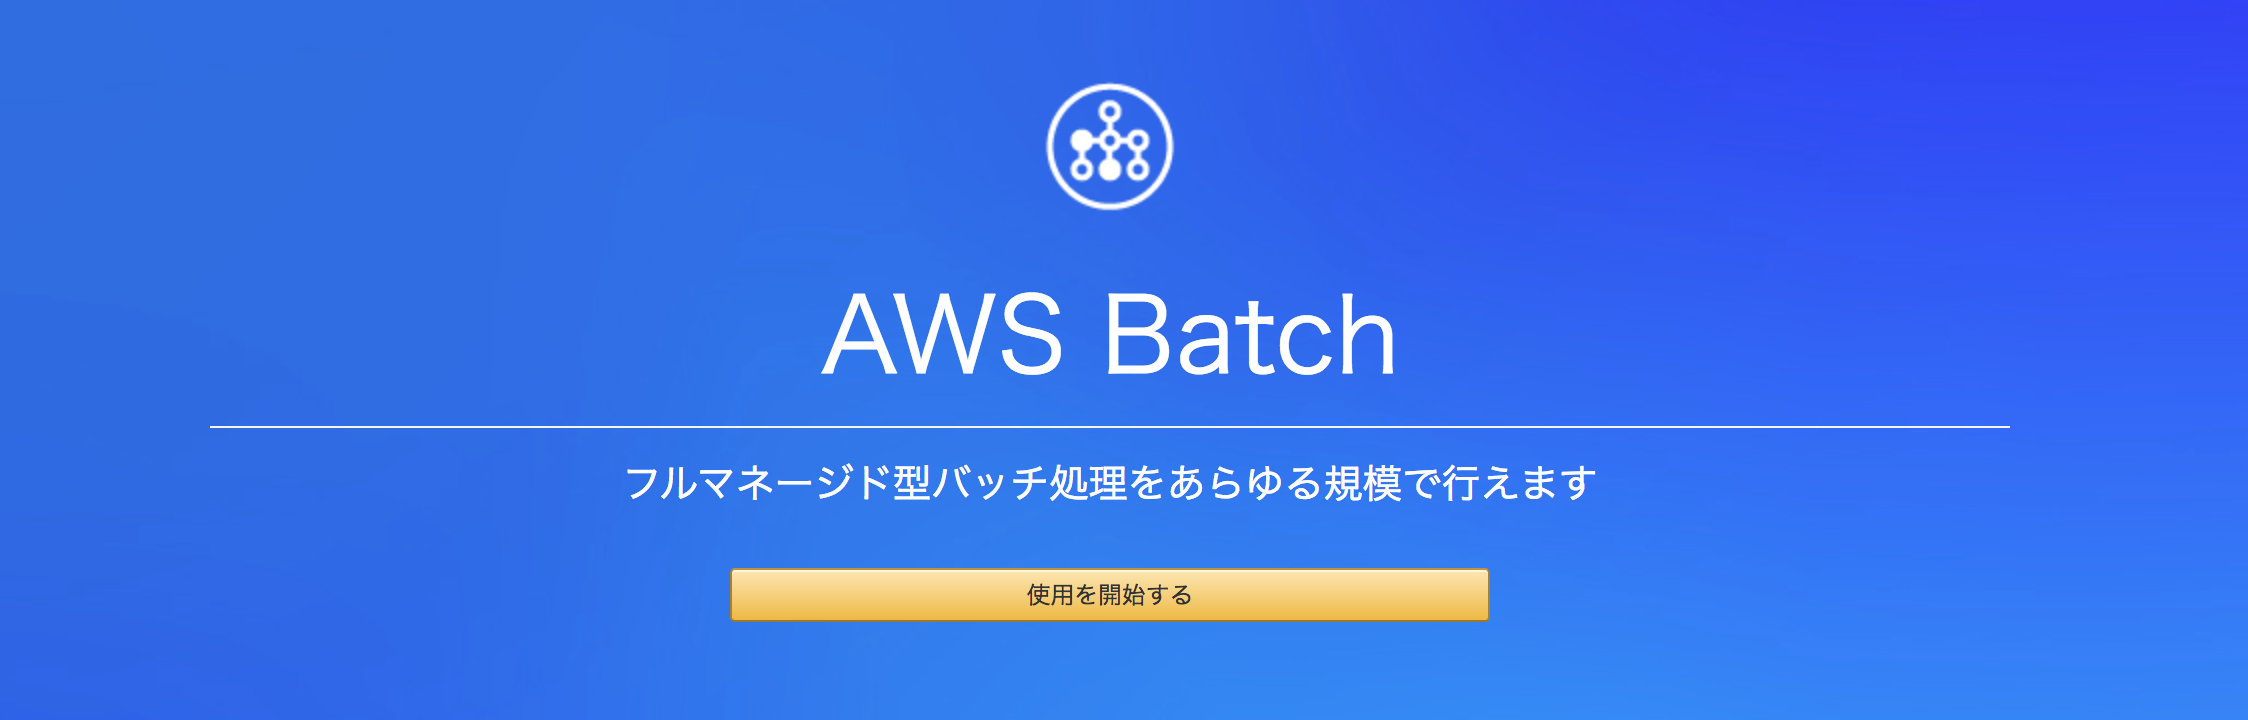 About AWS Batch